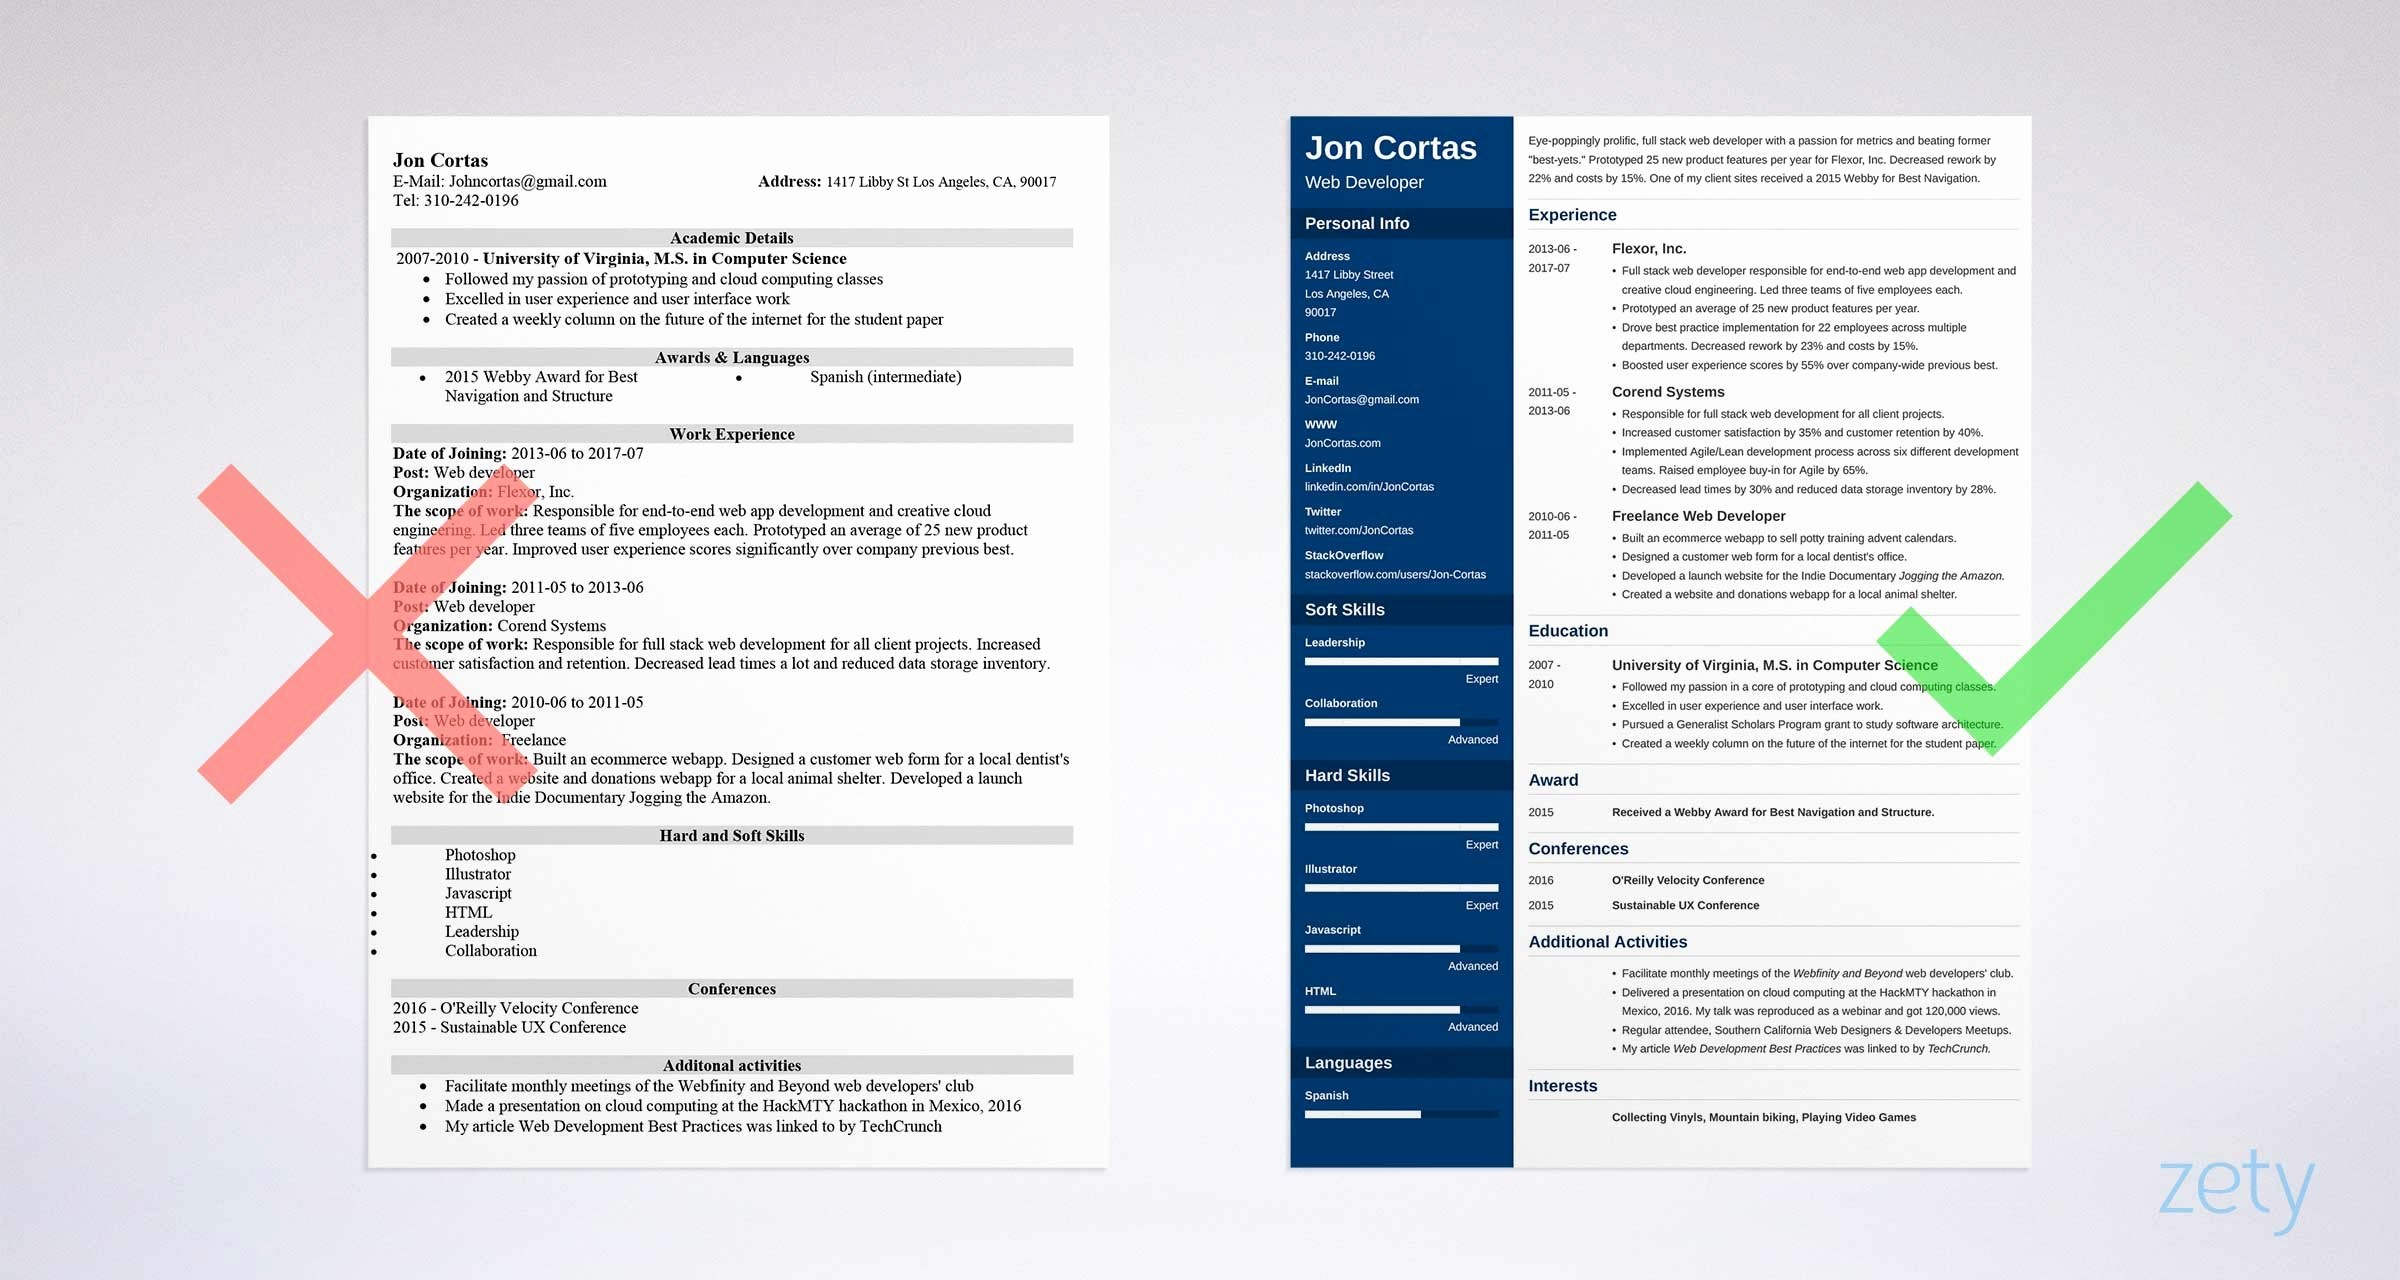 Resume Template On Microsoft Word Best Of Free Resume Templates for Word 15 Cv Resume formats to